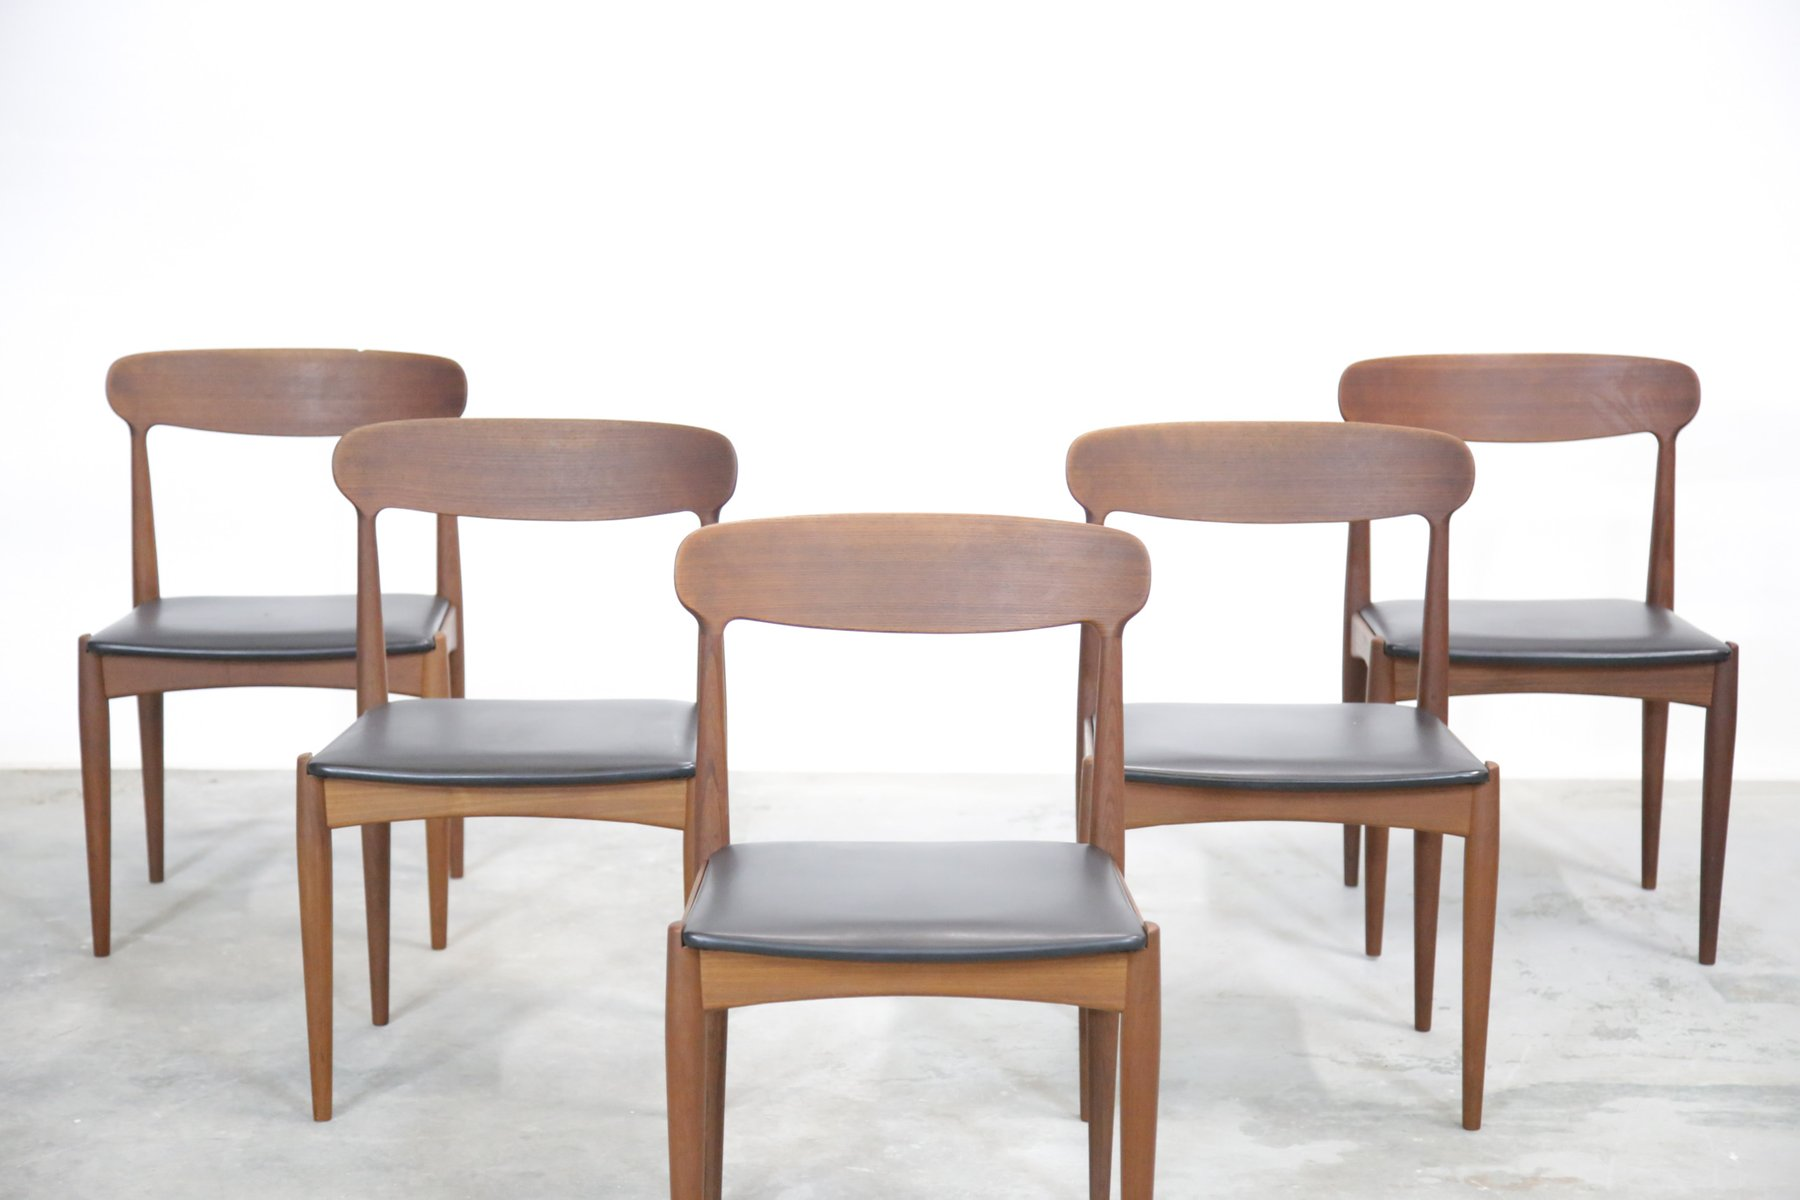 Five Chairs Danish Dining Chairs By Johannes Andersen For Uldum 1960s